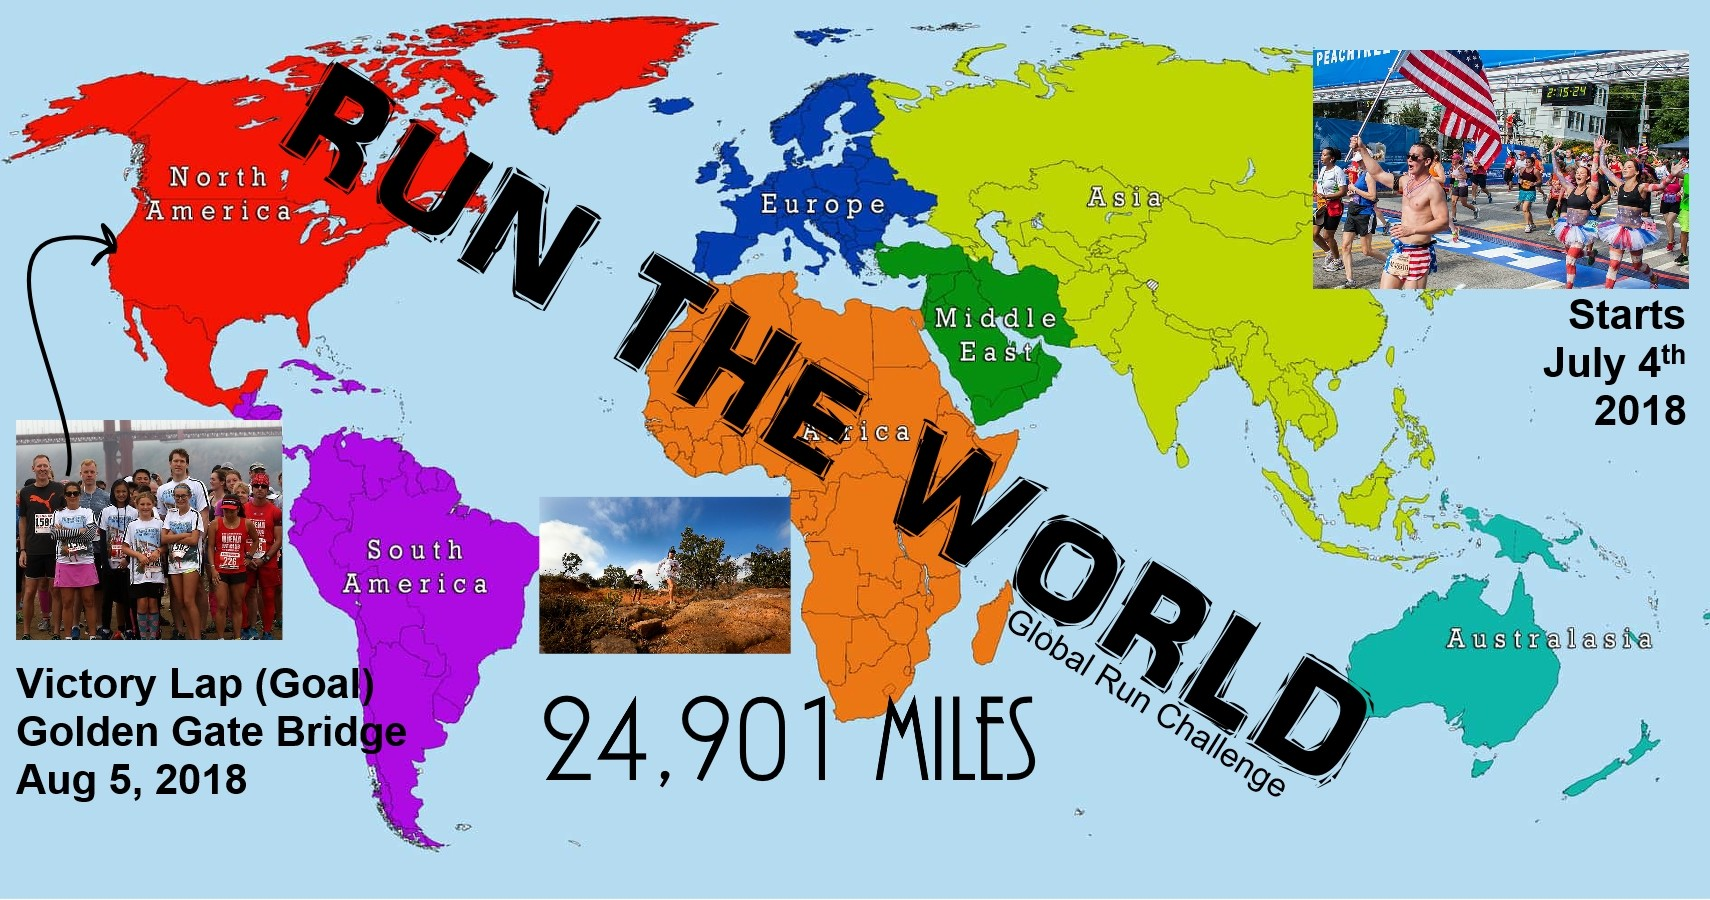 If you love running and would like to show the world, this 24,901 mile challenge circling the world is for you